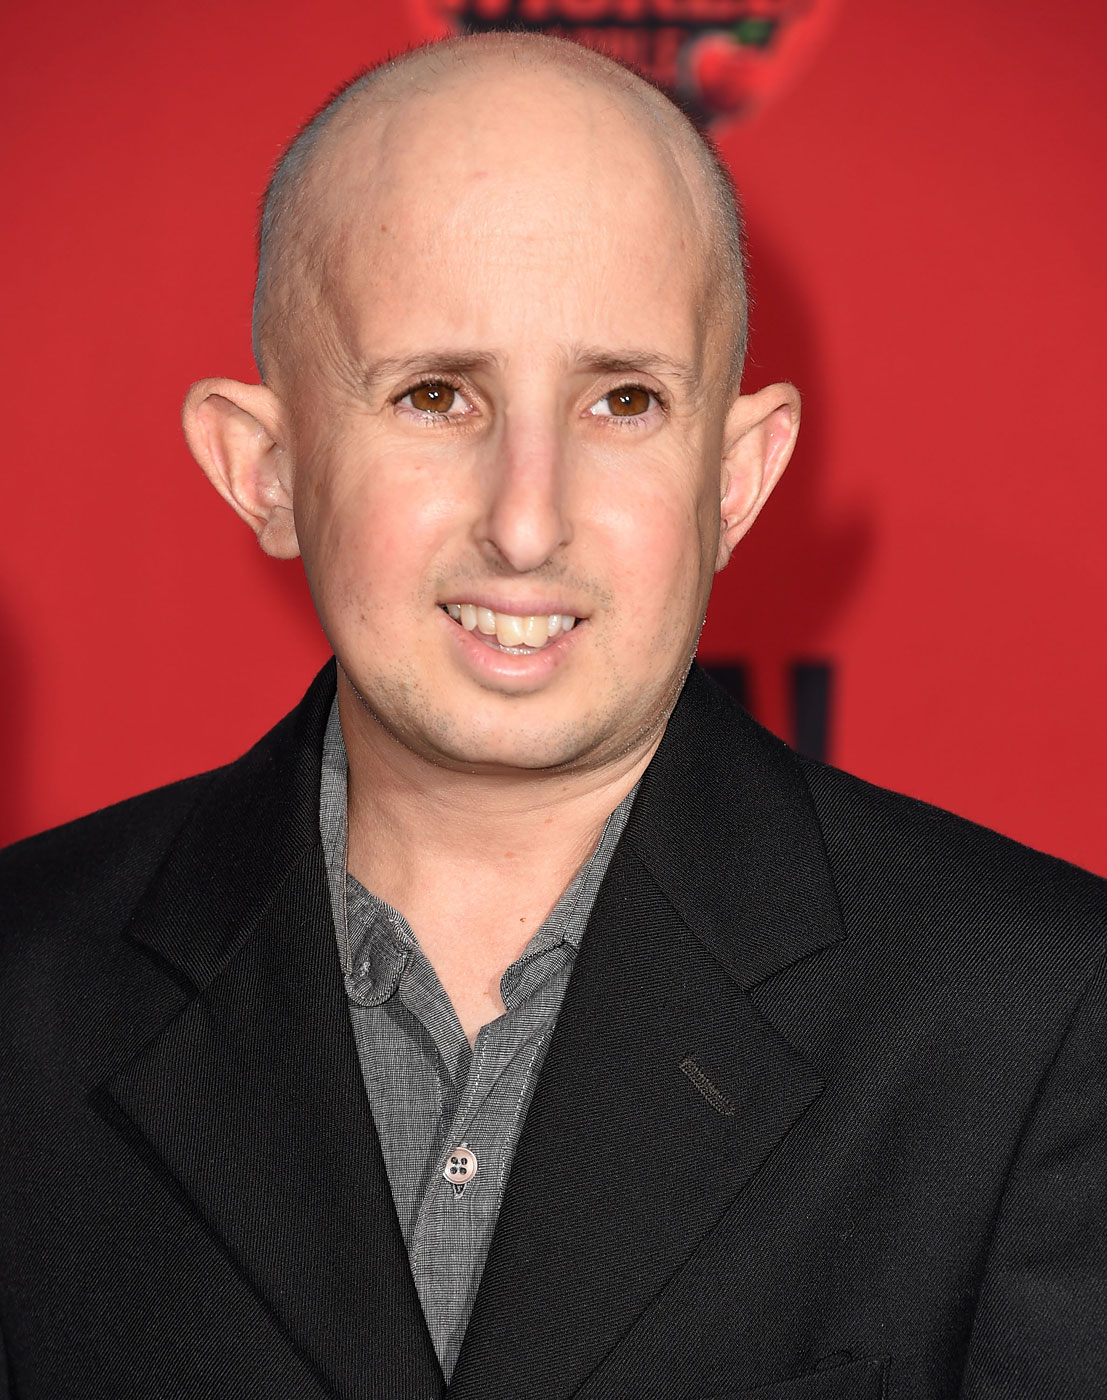 Ben Woolf arrives at the American Horror Story: Freak Show Los Angeles Premiere at TCL Chinese Theatre IMAX on Oct. 5, 2014 in Hollywood, Calif.